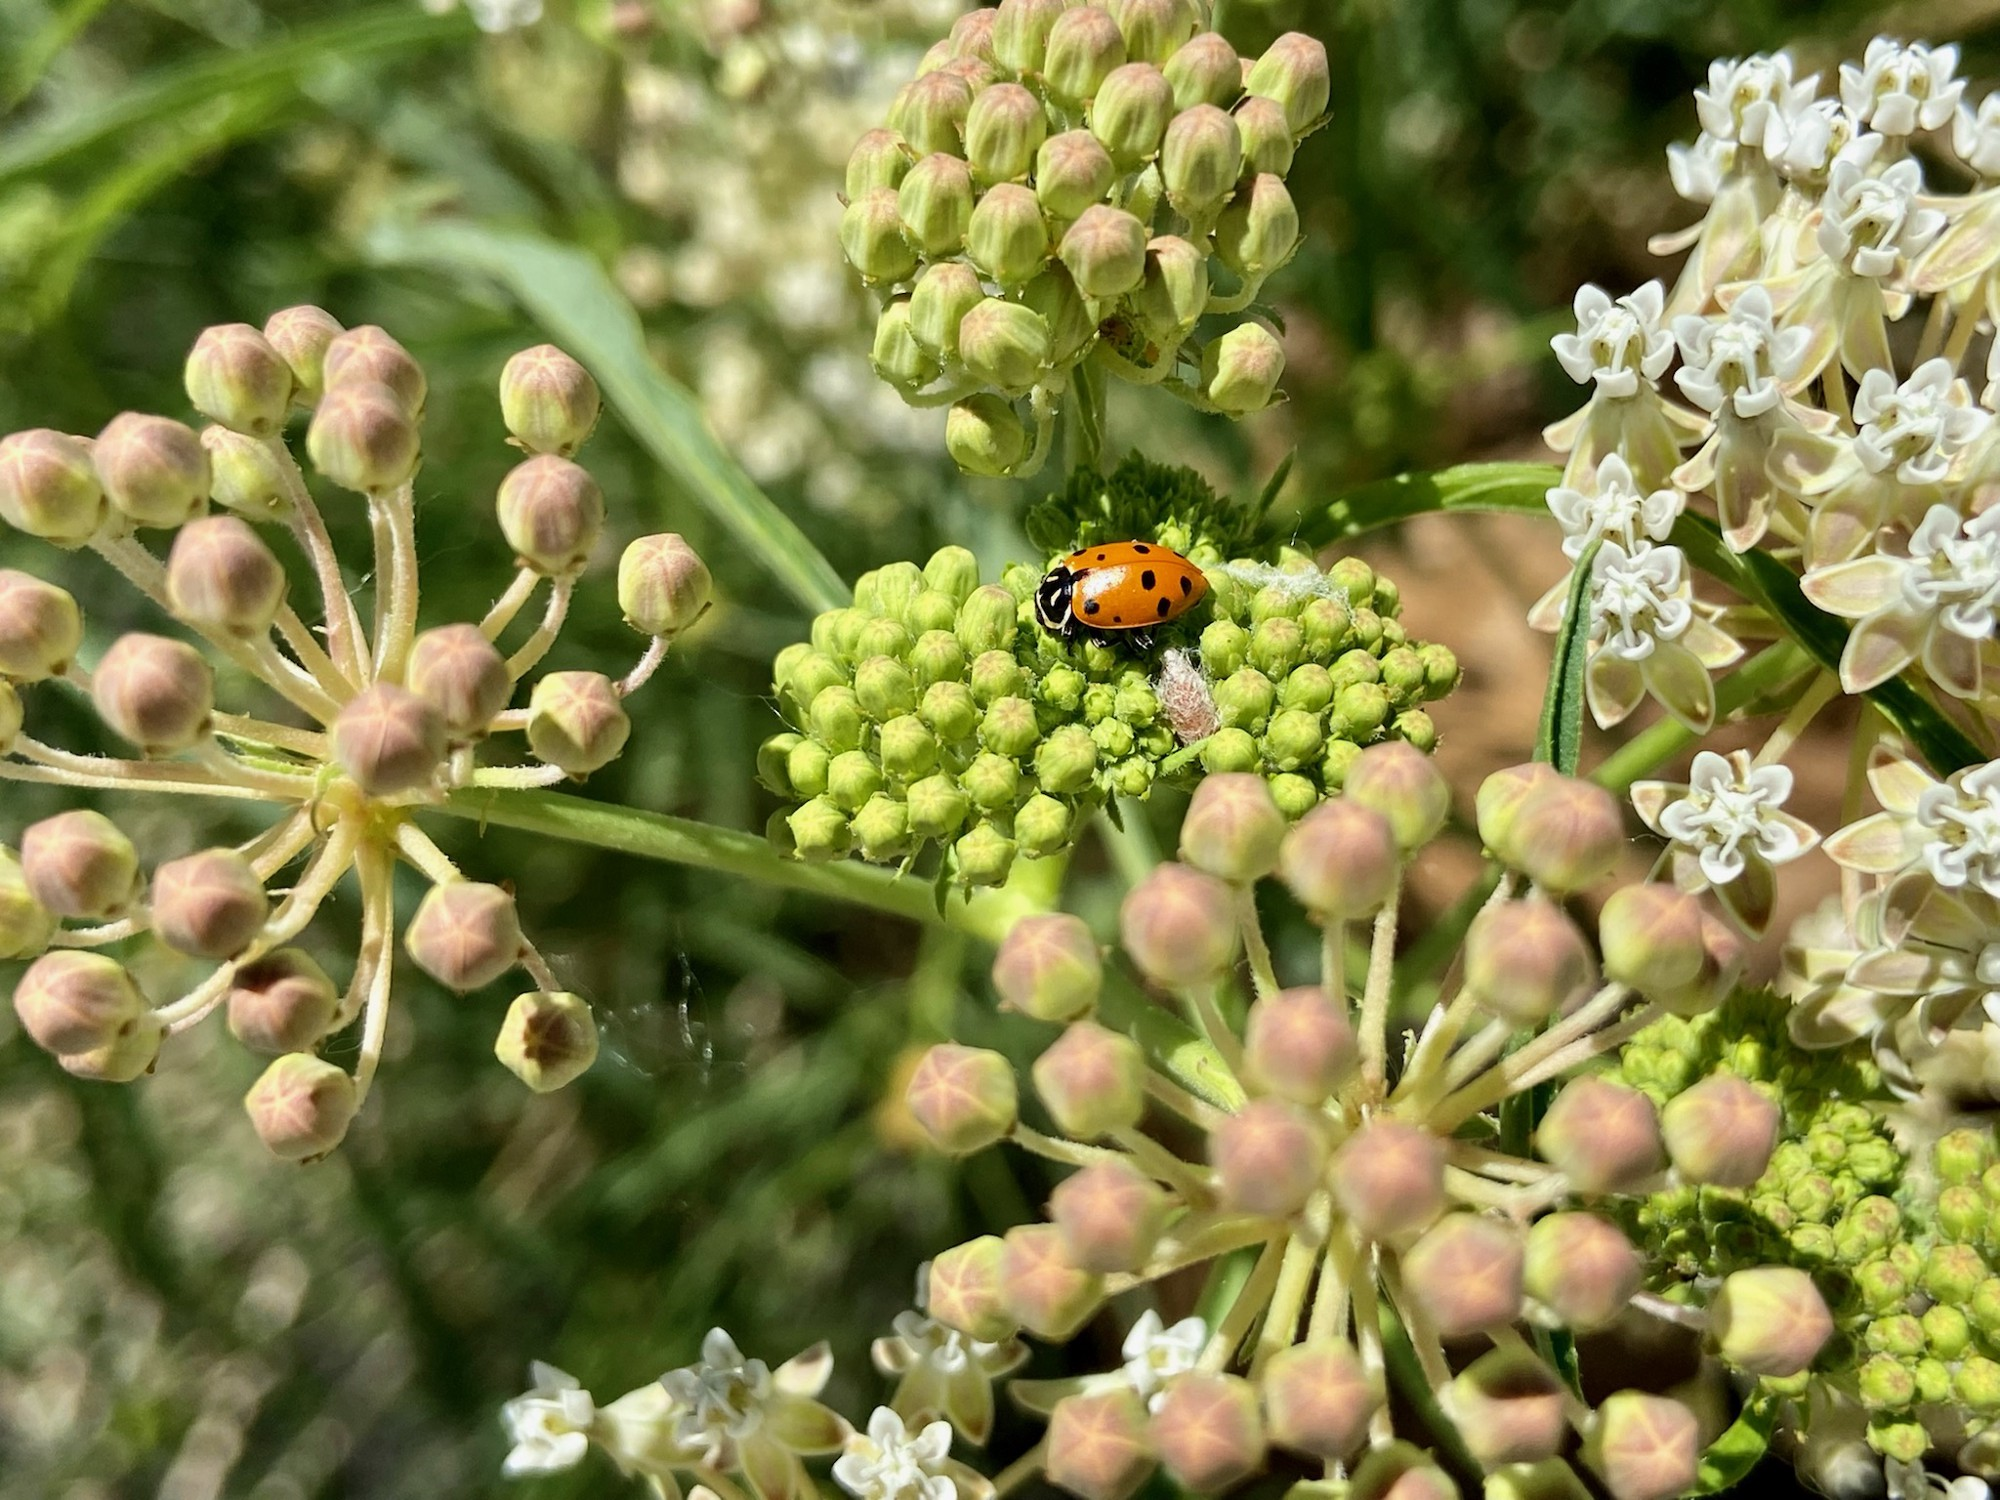 A bright red and black ladybug sitting on a milkweed plant.